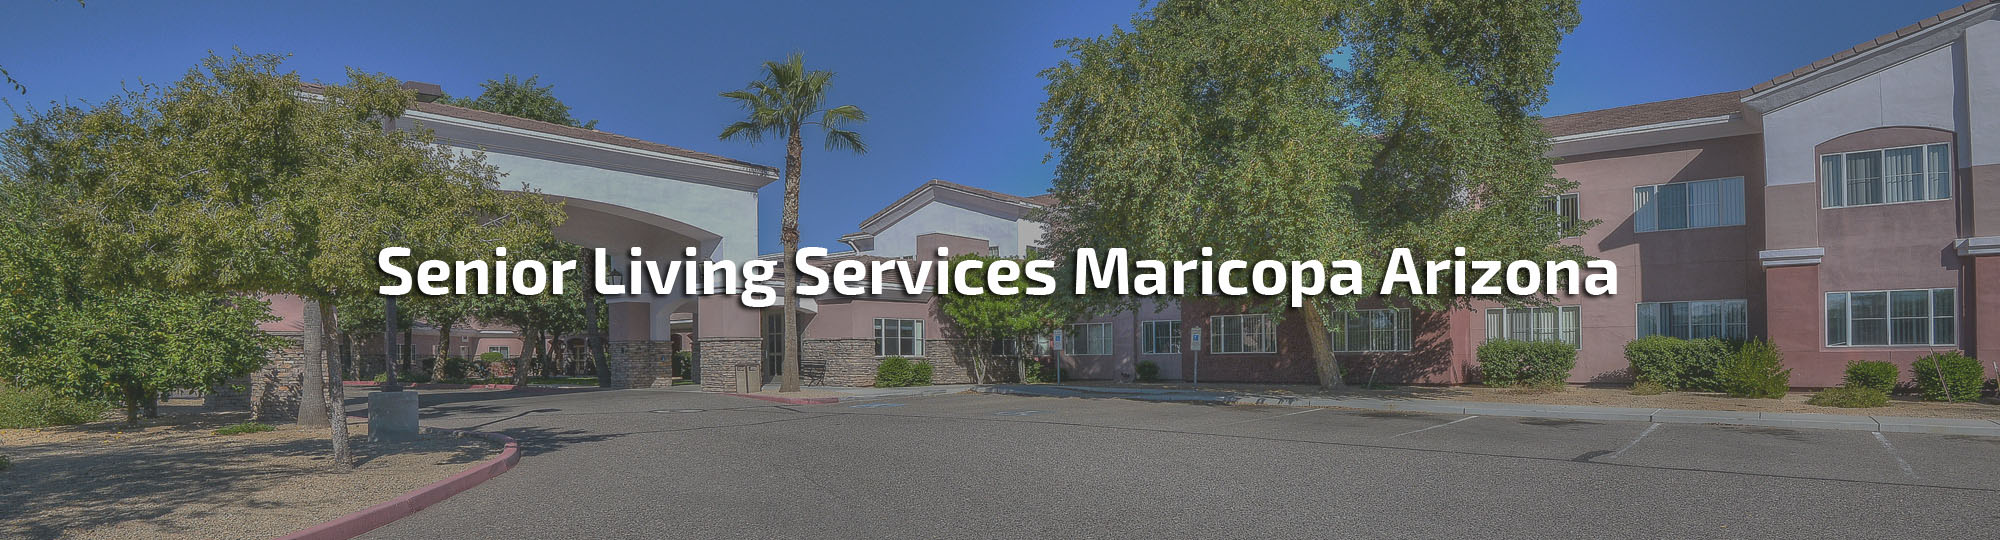 Senior Living Services Maricopa Arizona